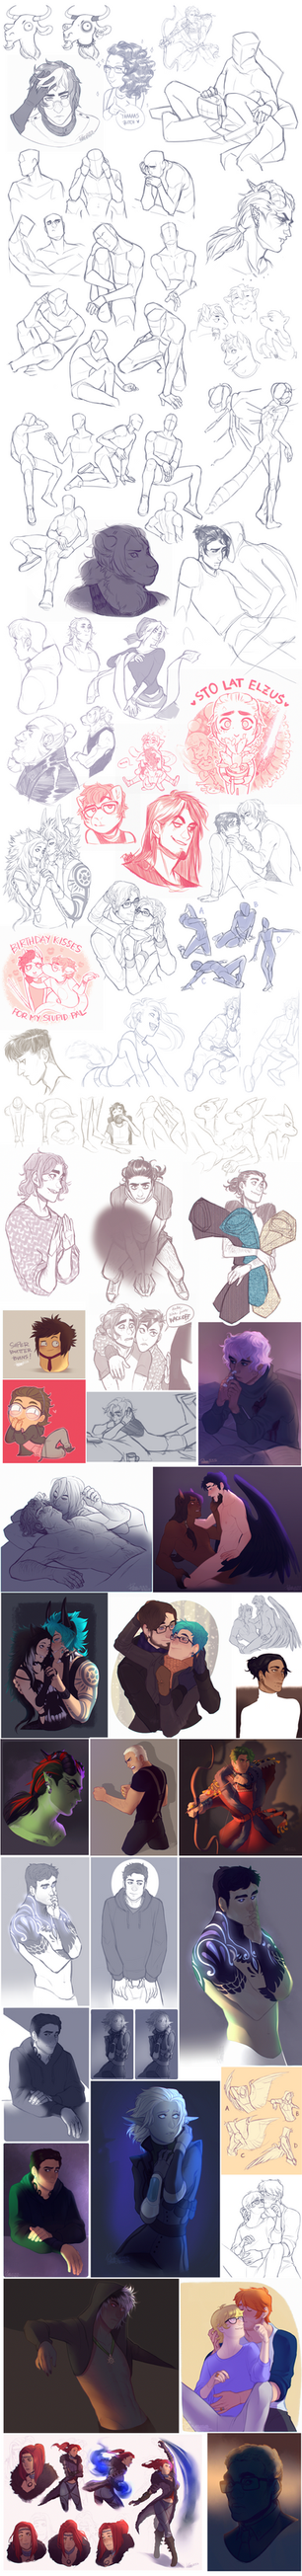 Sketch Dump 27 - End of the 2016 by Rejuch